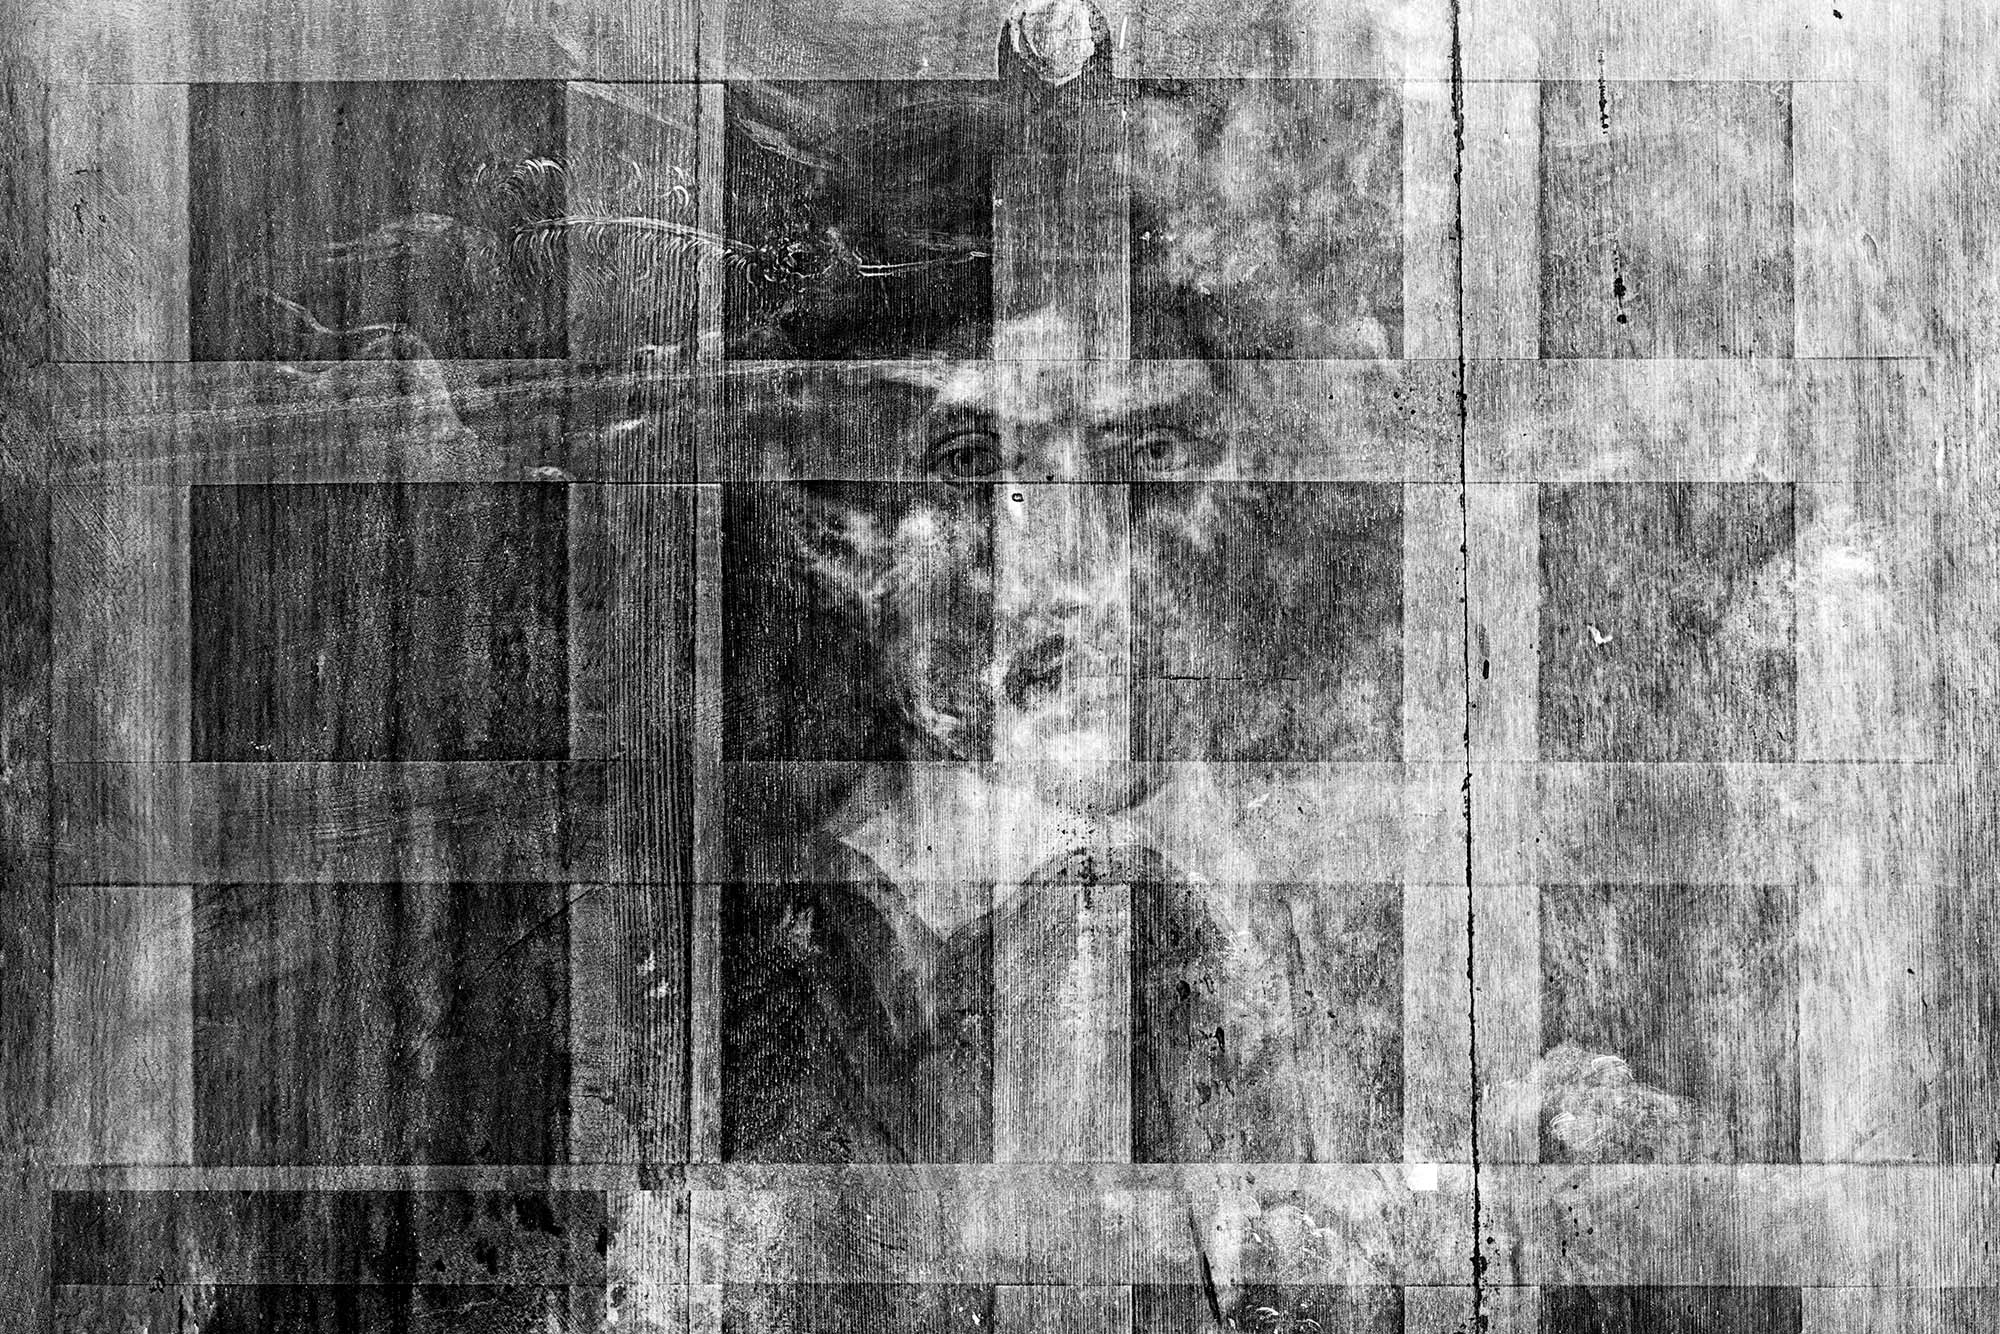 The X-ray, shown above, revealed a second portrait hidden underneath the supposed Rembrandt painting. (Image courtesy of the UVA Imaging Center)